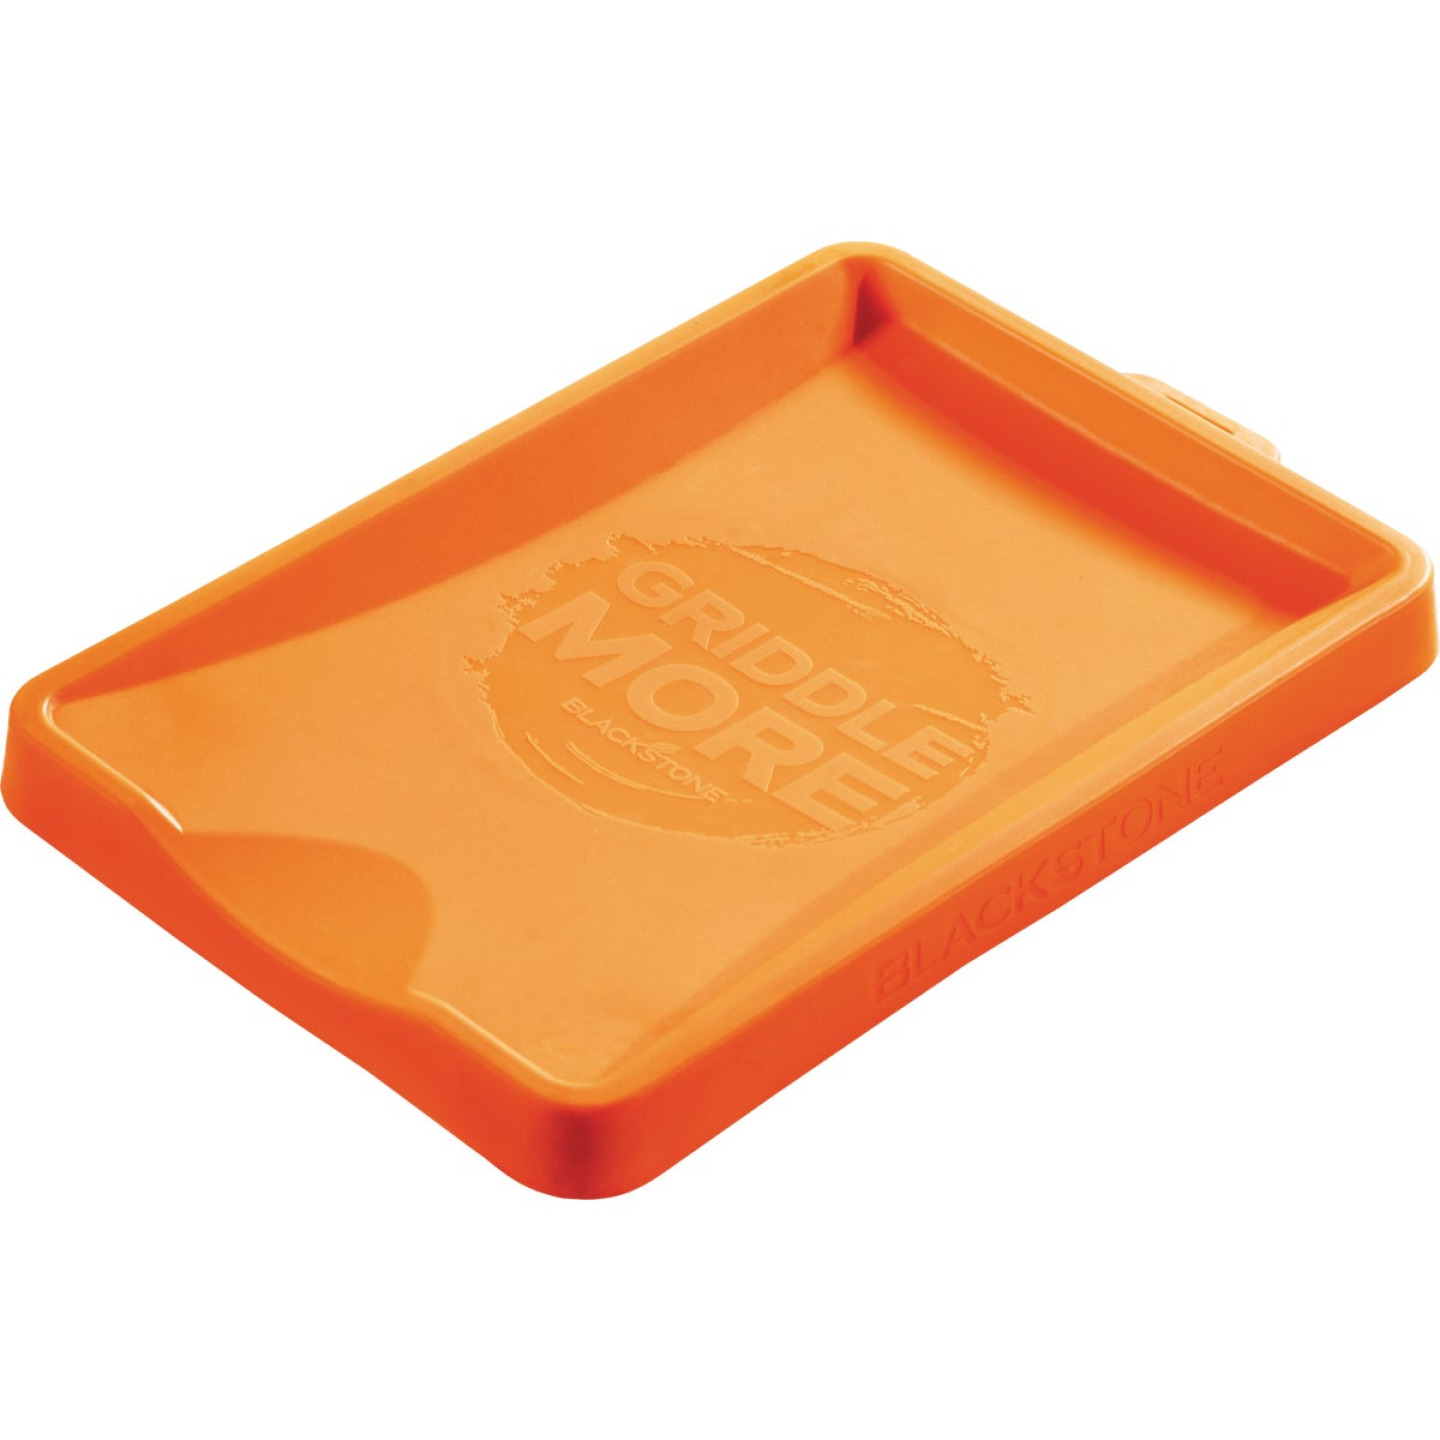 Blackstone 10-3/4 In. W. x 7 In. L. Orange Silicone Spatula Mat Image 1